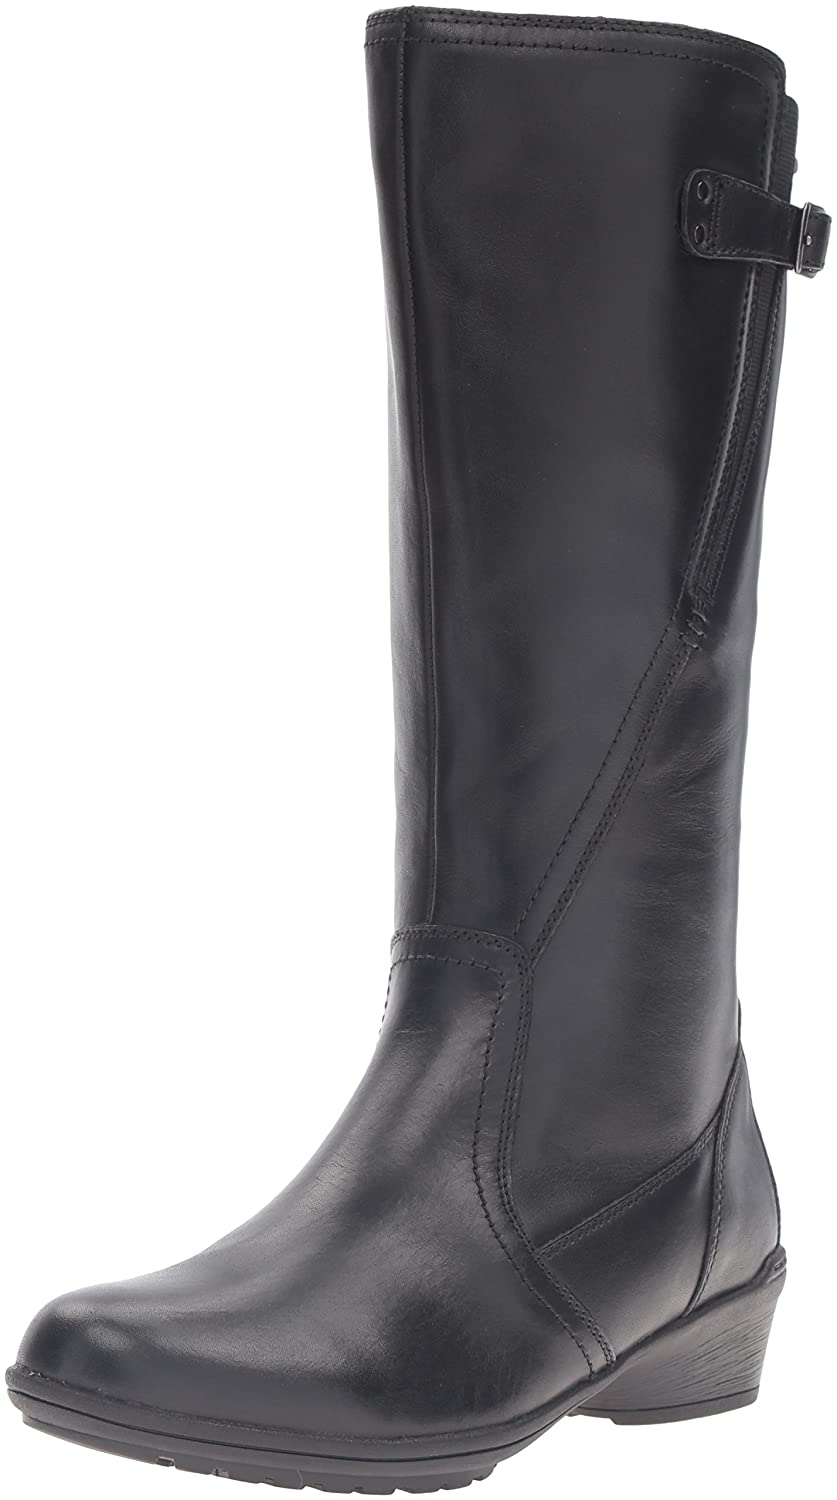 Rockport Women's Cobb Hill Rayna Waterproof Boot B01AKA6G02 9 W US|Black